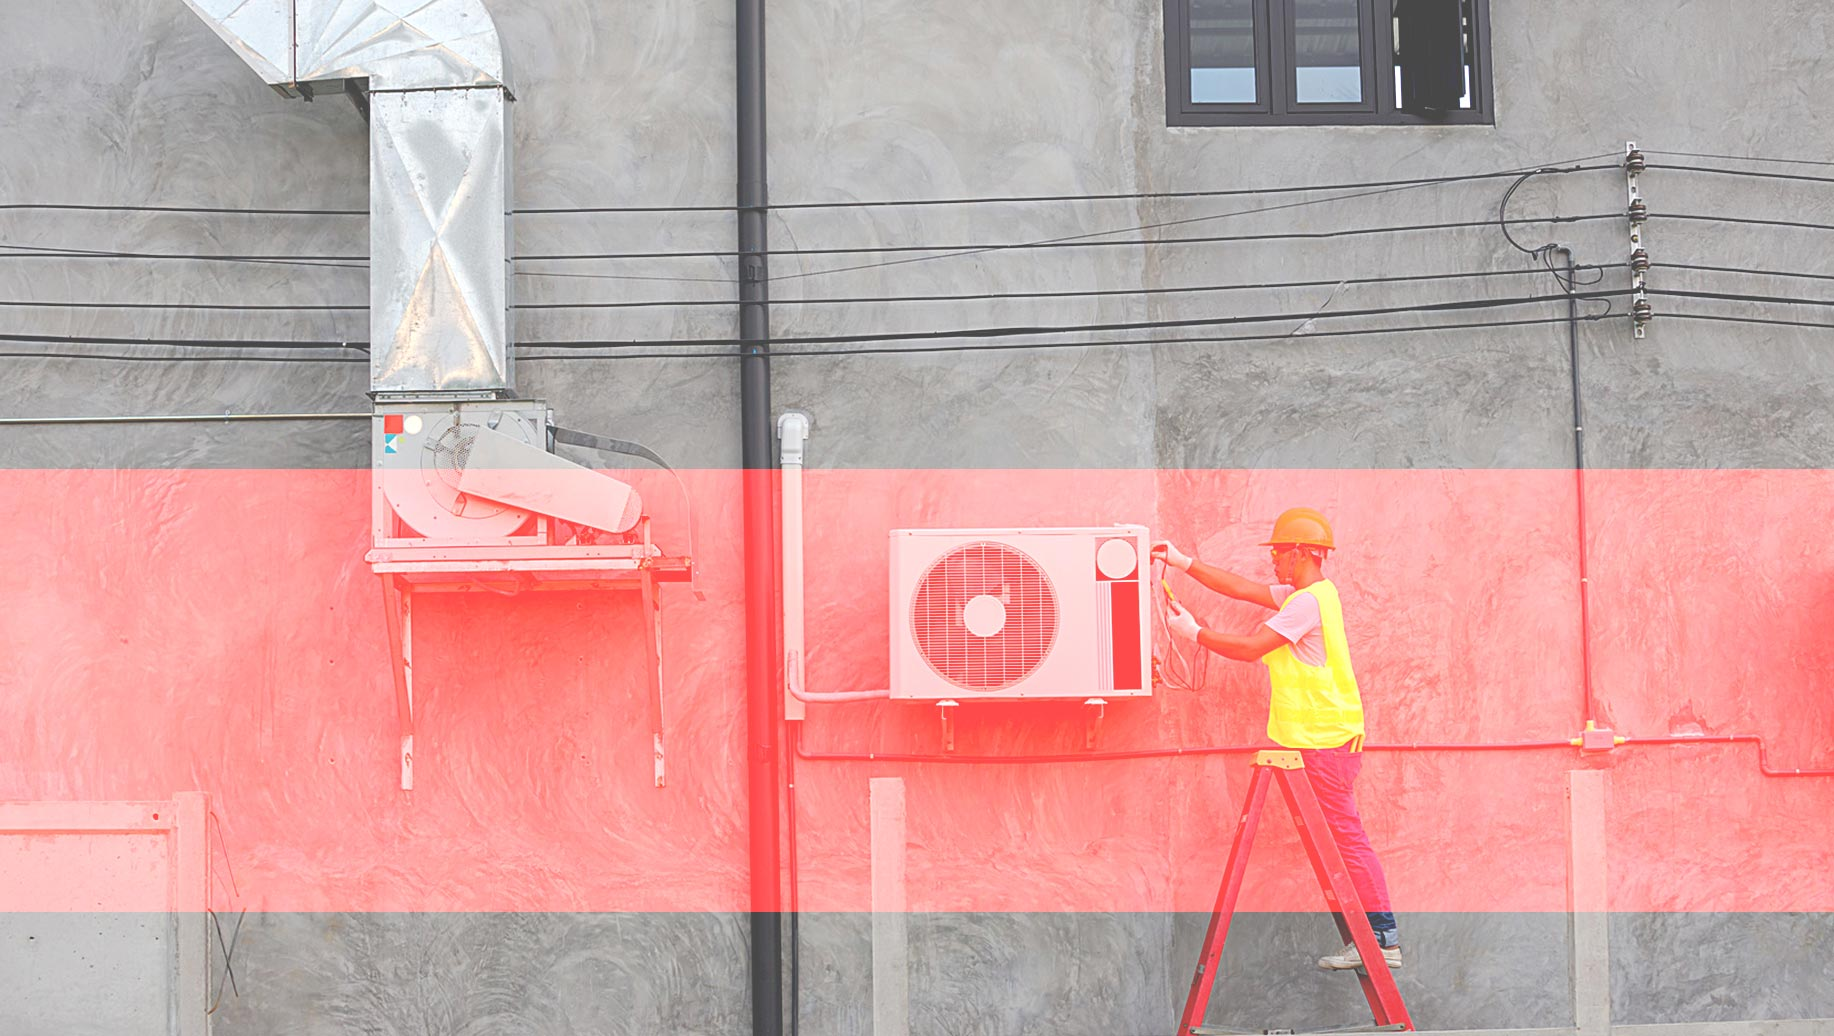 Commercial Building Maintenance Checklist What Can Be Automated?